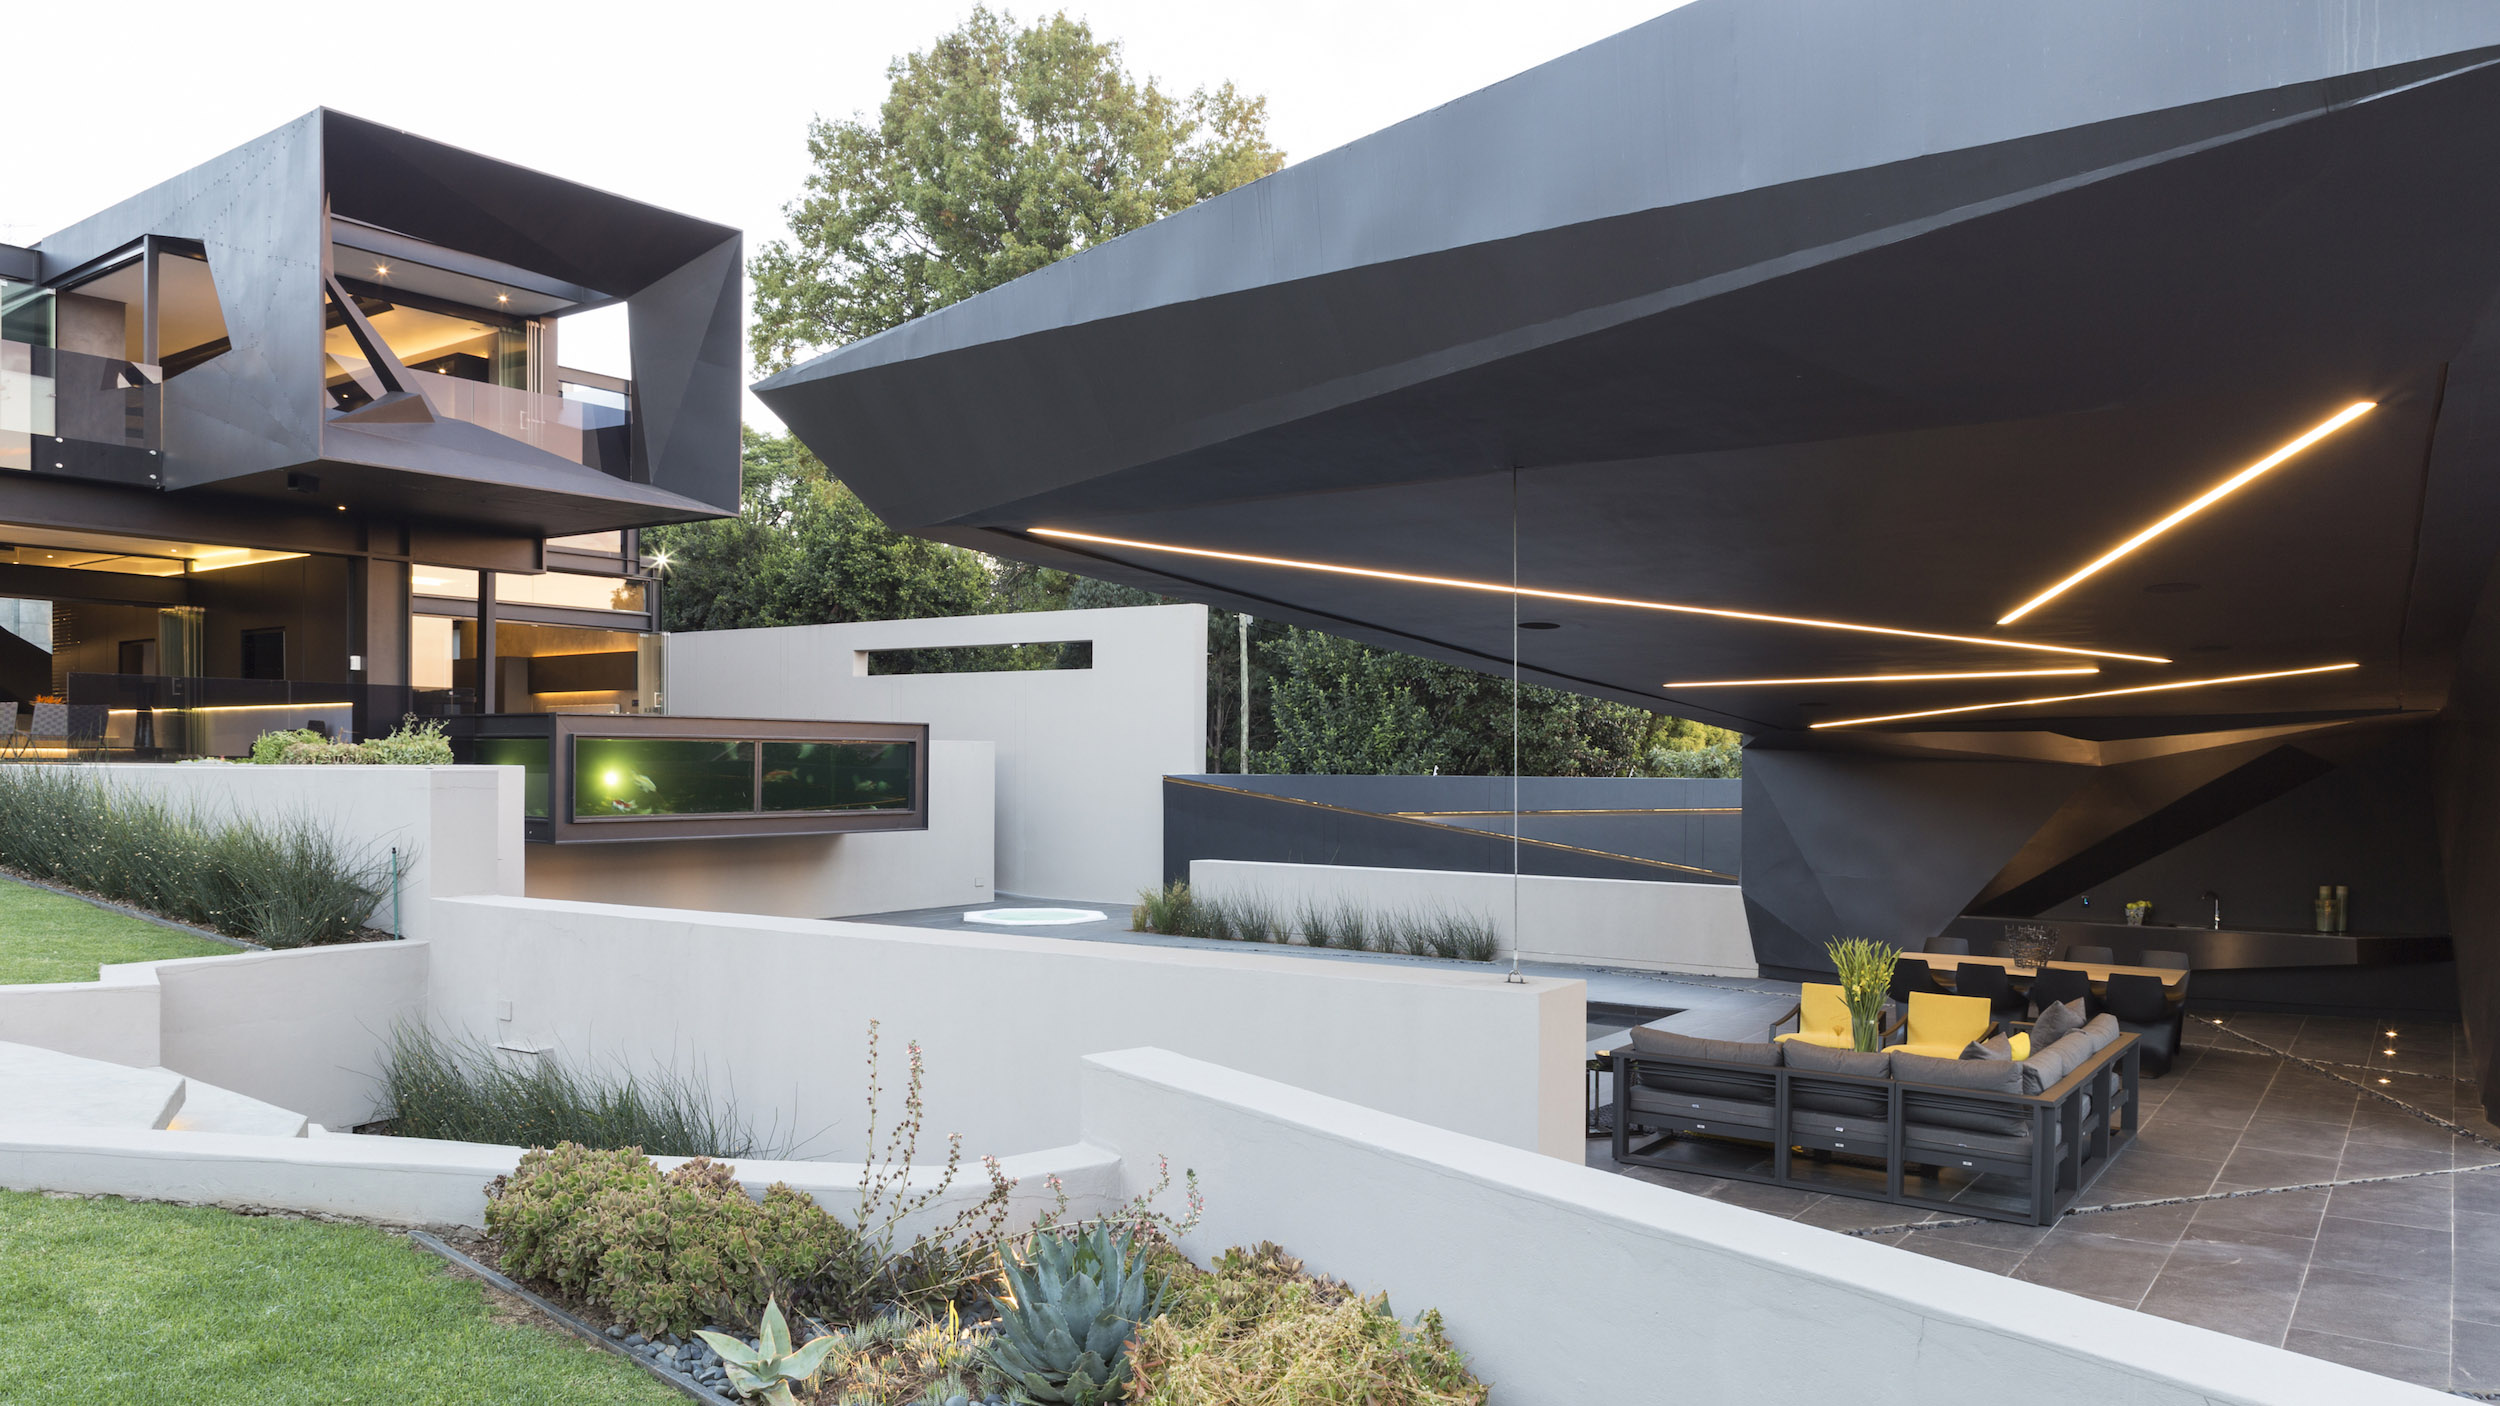 Kloof Road Masterpiece House in Johannesburg by Nico van der Meulen Architects-11